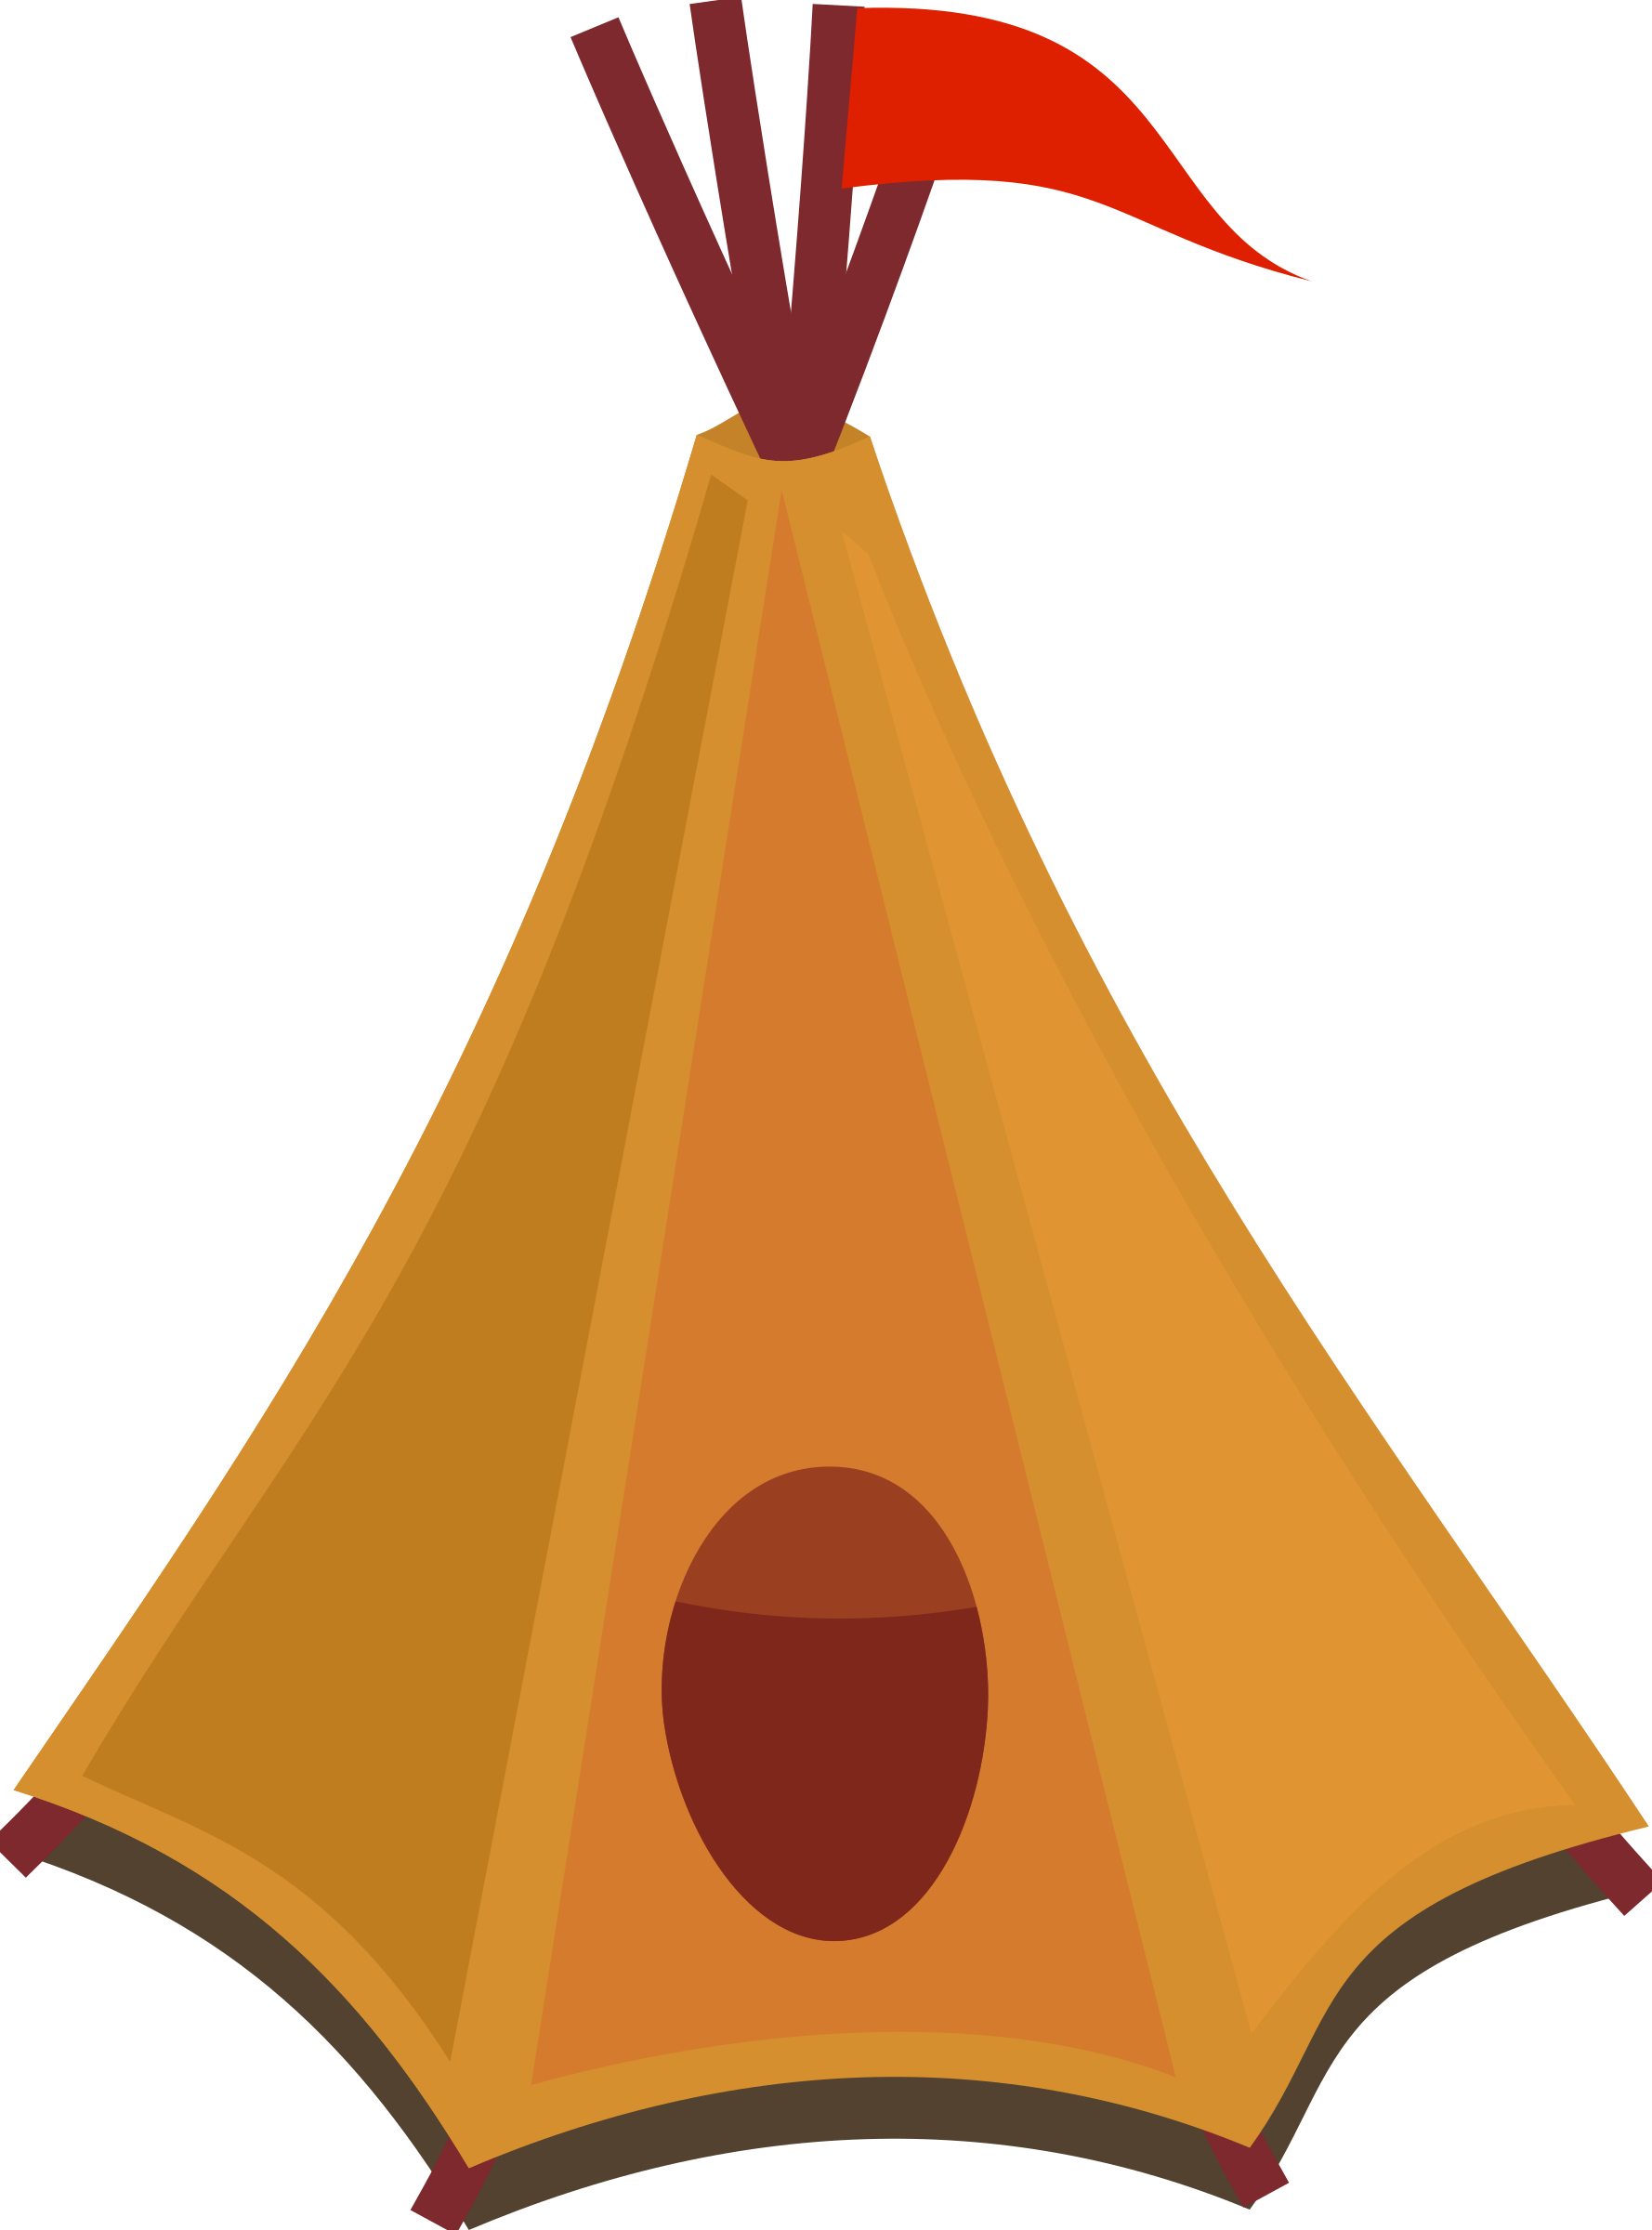 Cartoon tipi / tent with red flag by qubodup